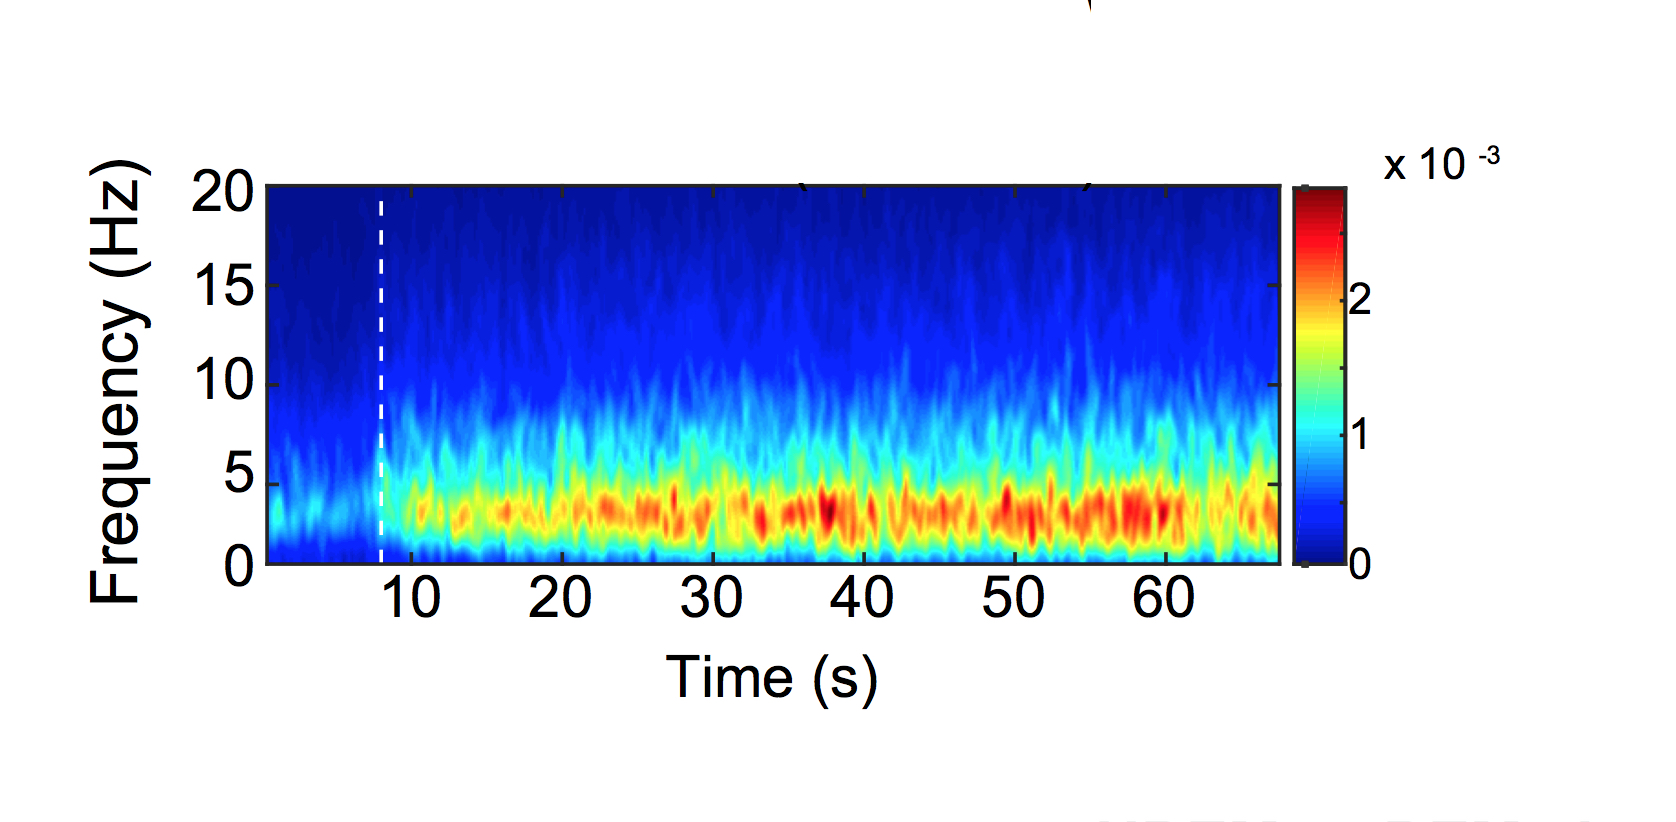 EEG spectrogram during a wake-to-NREM sleep transition